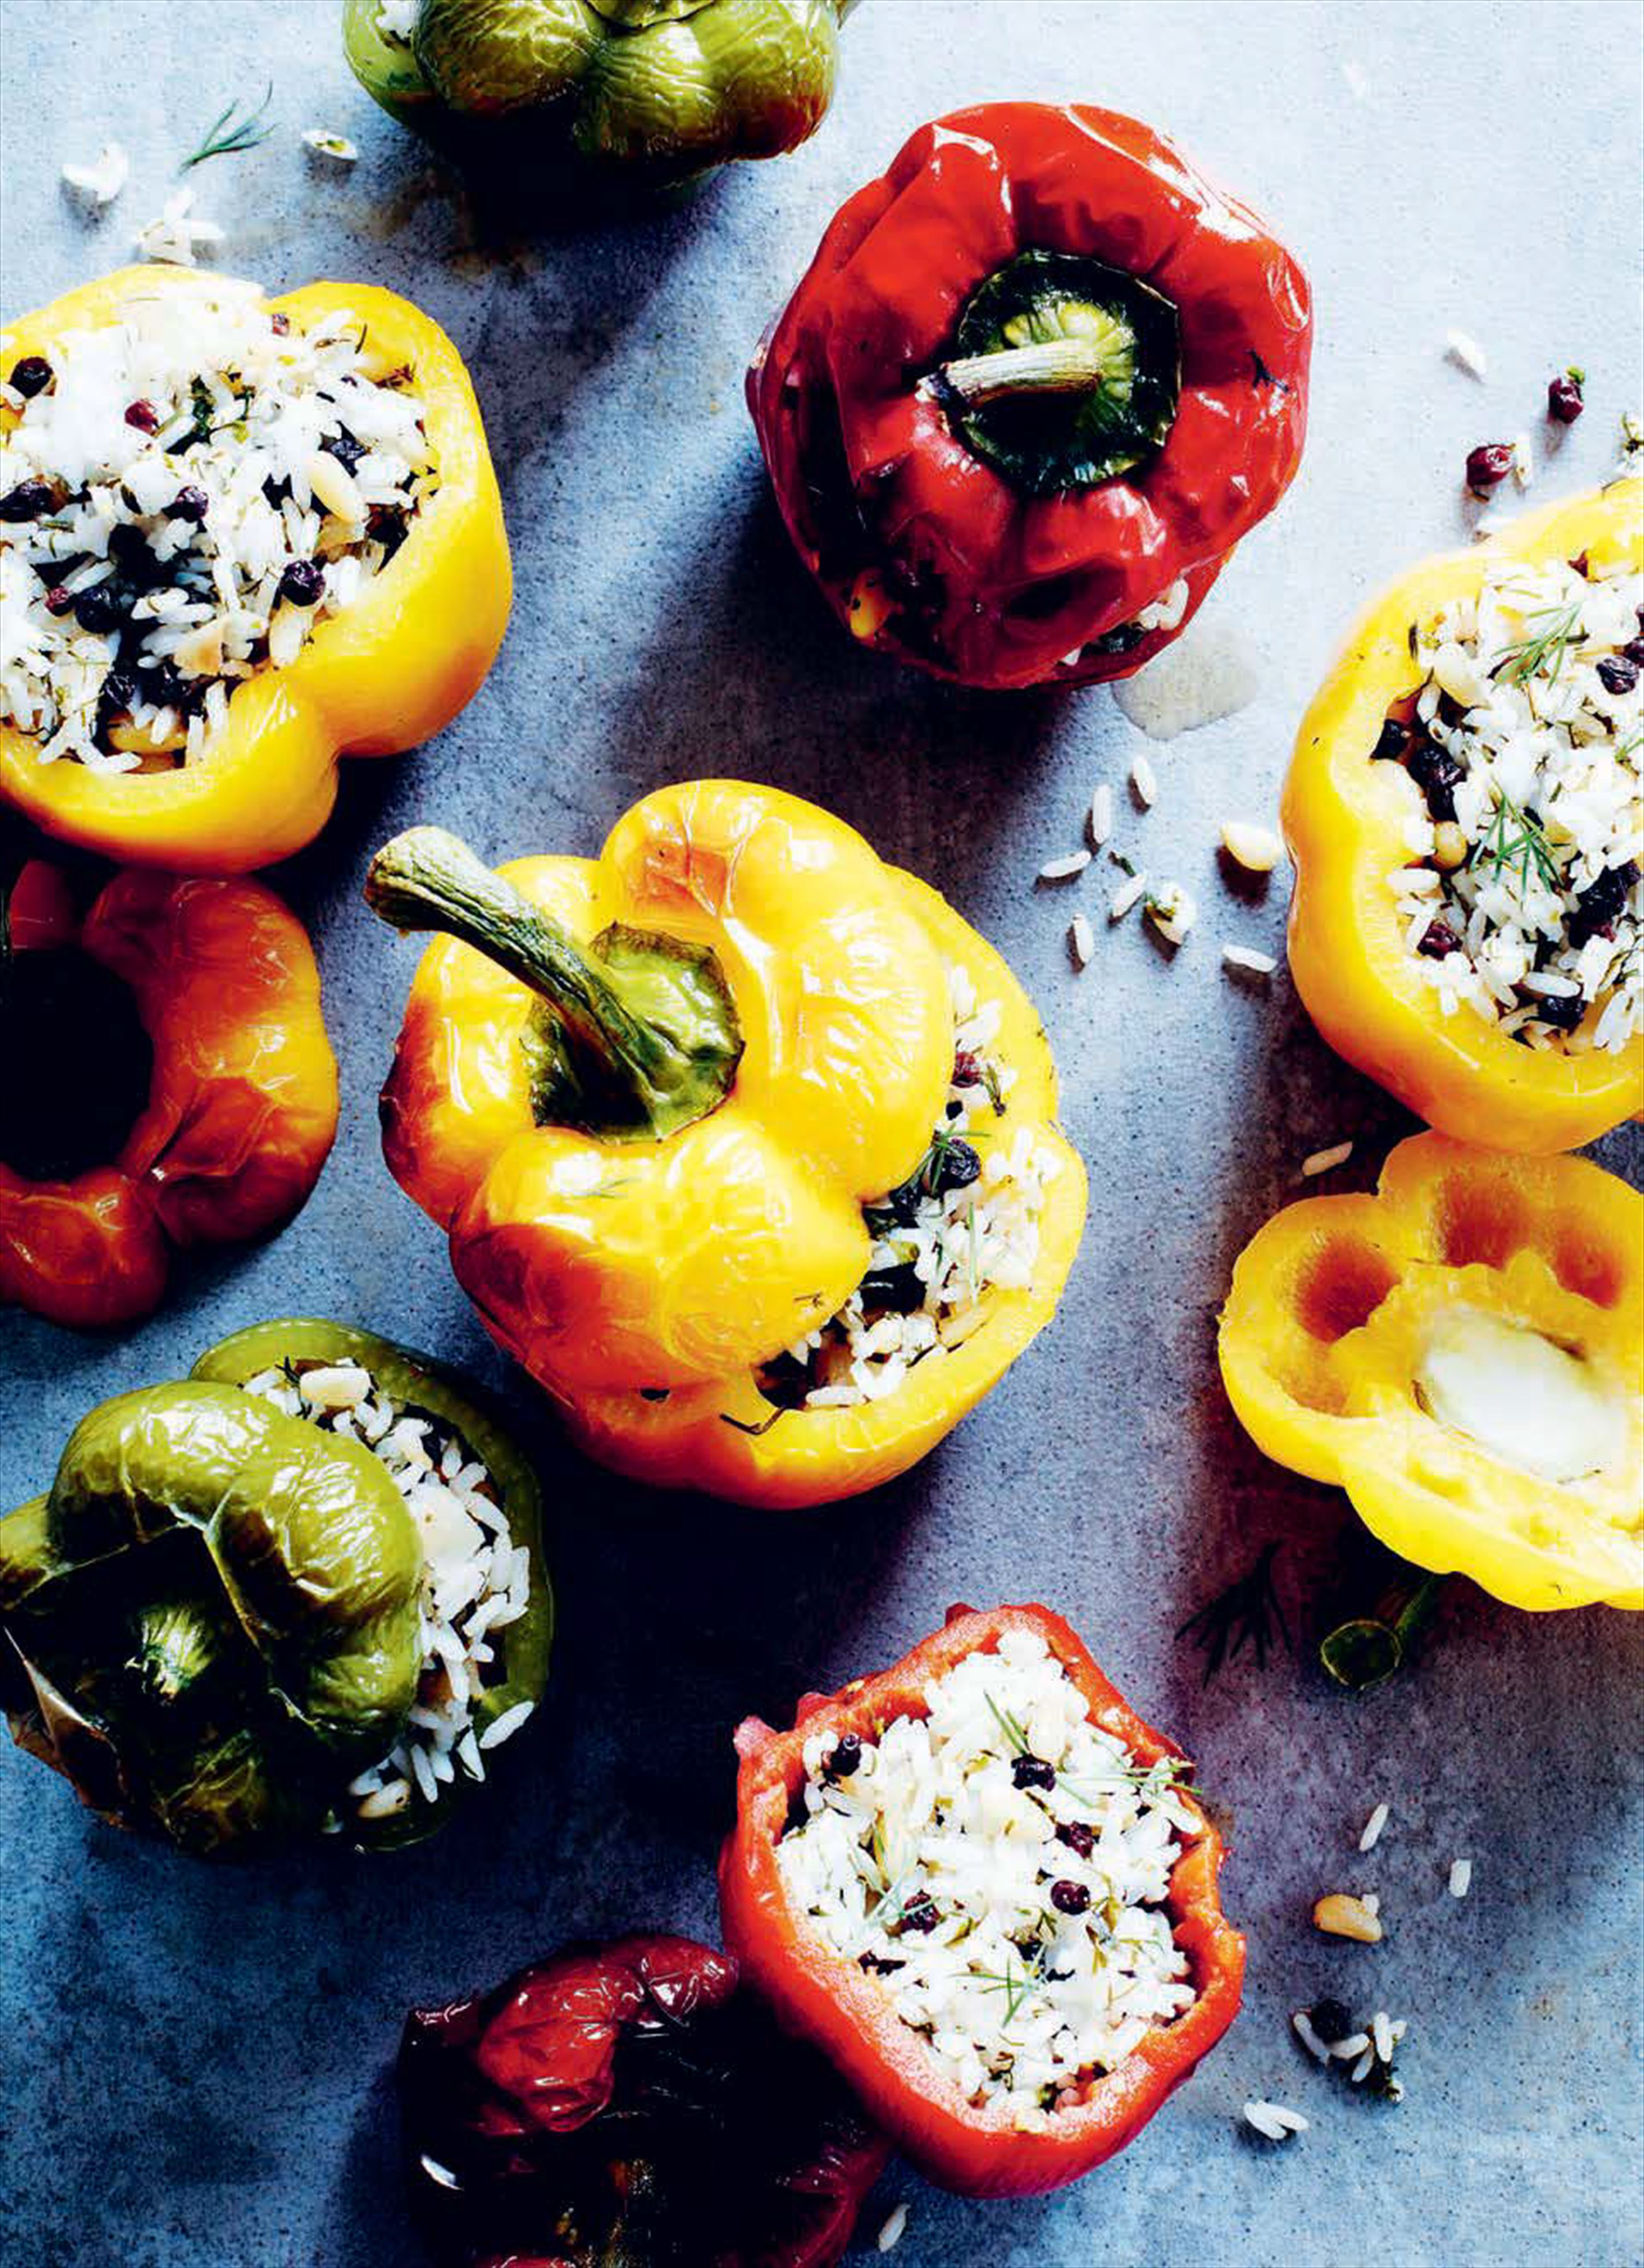 Sweet peppers stuffed with rice, pine nuts and currants